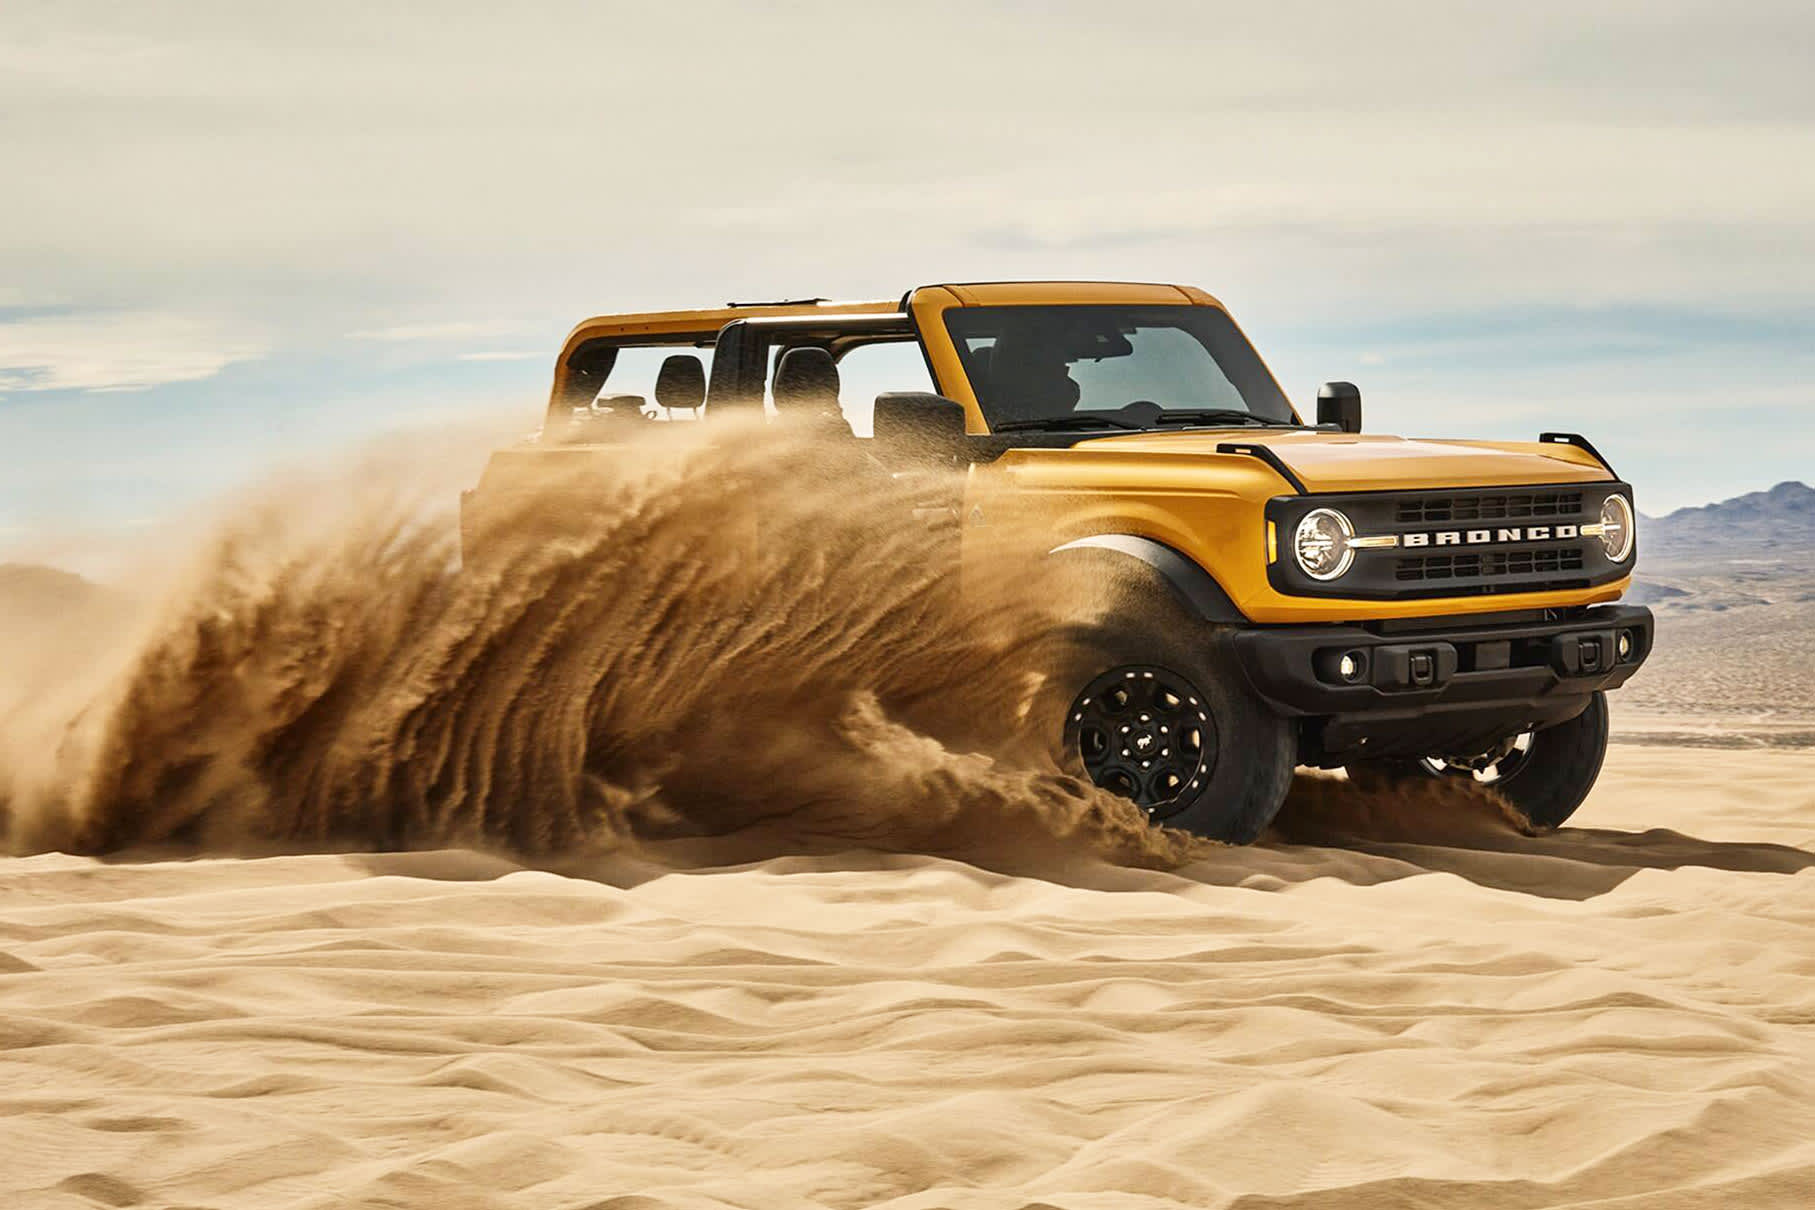 Ford delaying Bronco SUV to summer 2021 due to Covid-related issues - CNBC